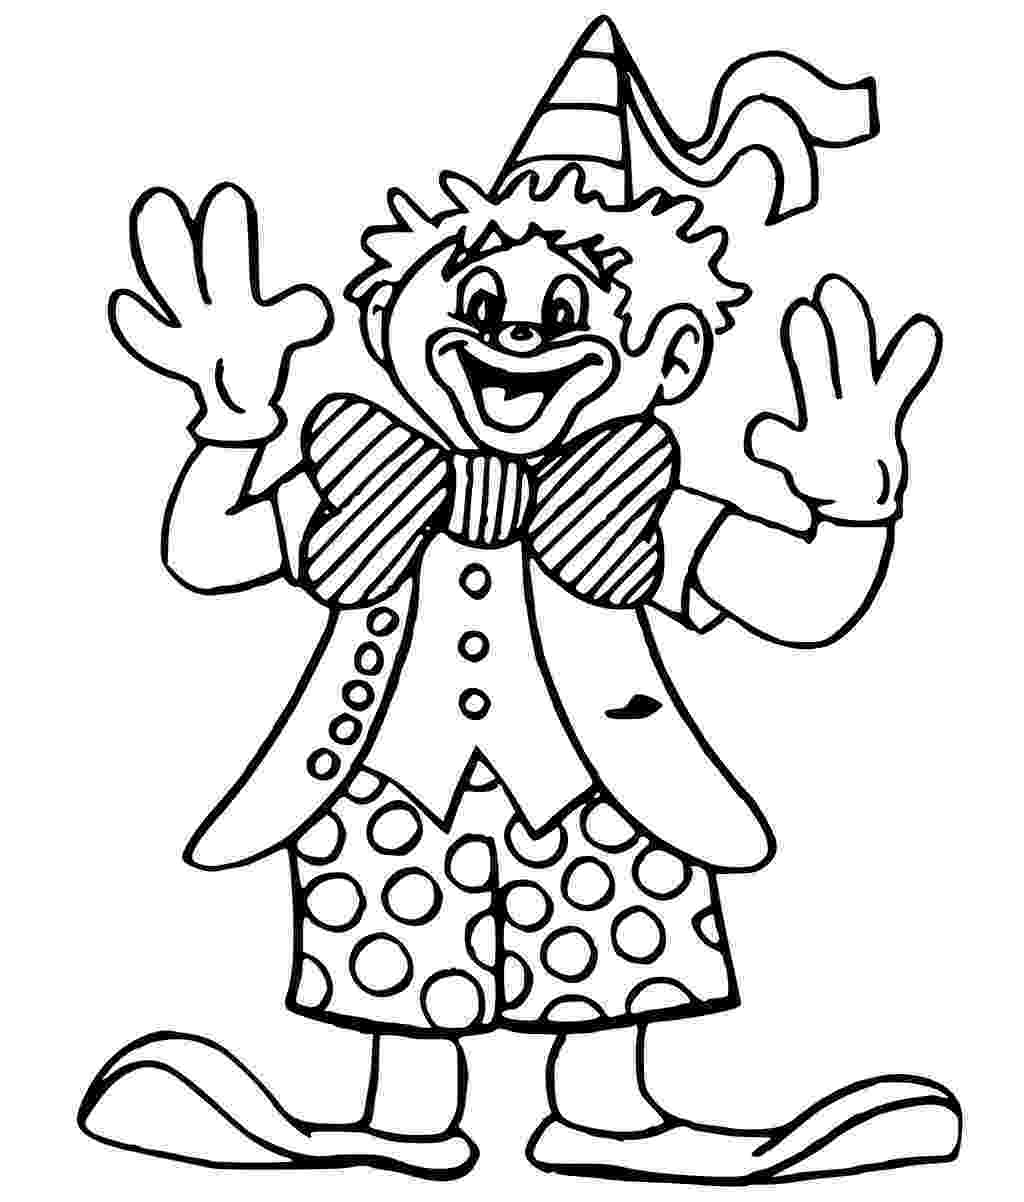 coloring pages clown smiling clown coloring pages hellokidscom coloring clown pages